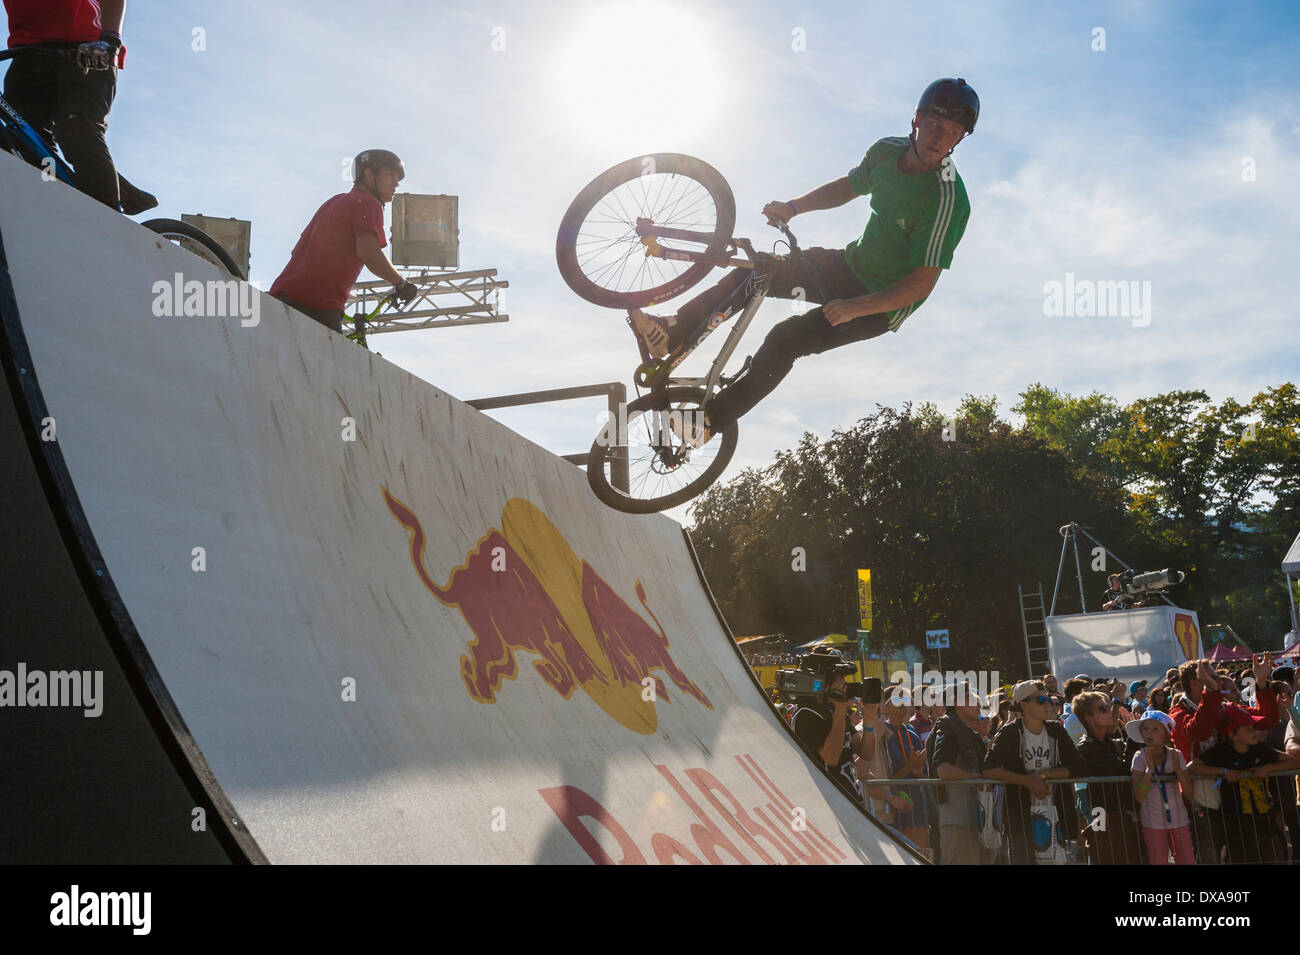 Freestyle mountainbike (MTB) professionals show spectacular jumps and trick at the 2013 freestyle.ch competition in Zurich - Stock Image